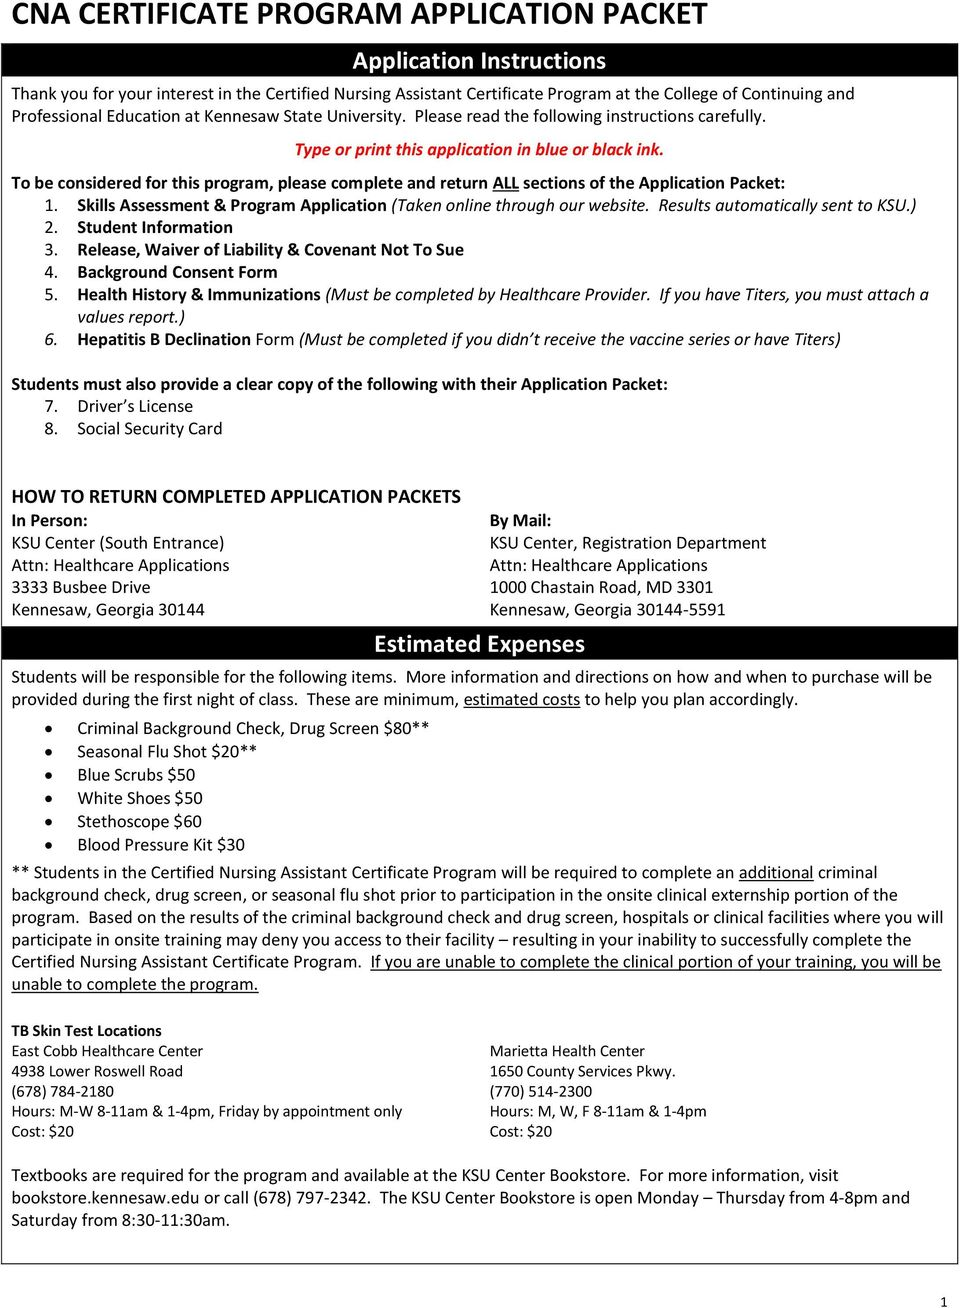 Cna Certificate Program Application Packet Pdf